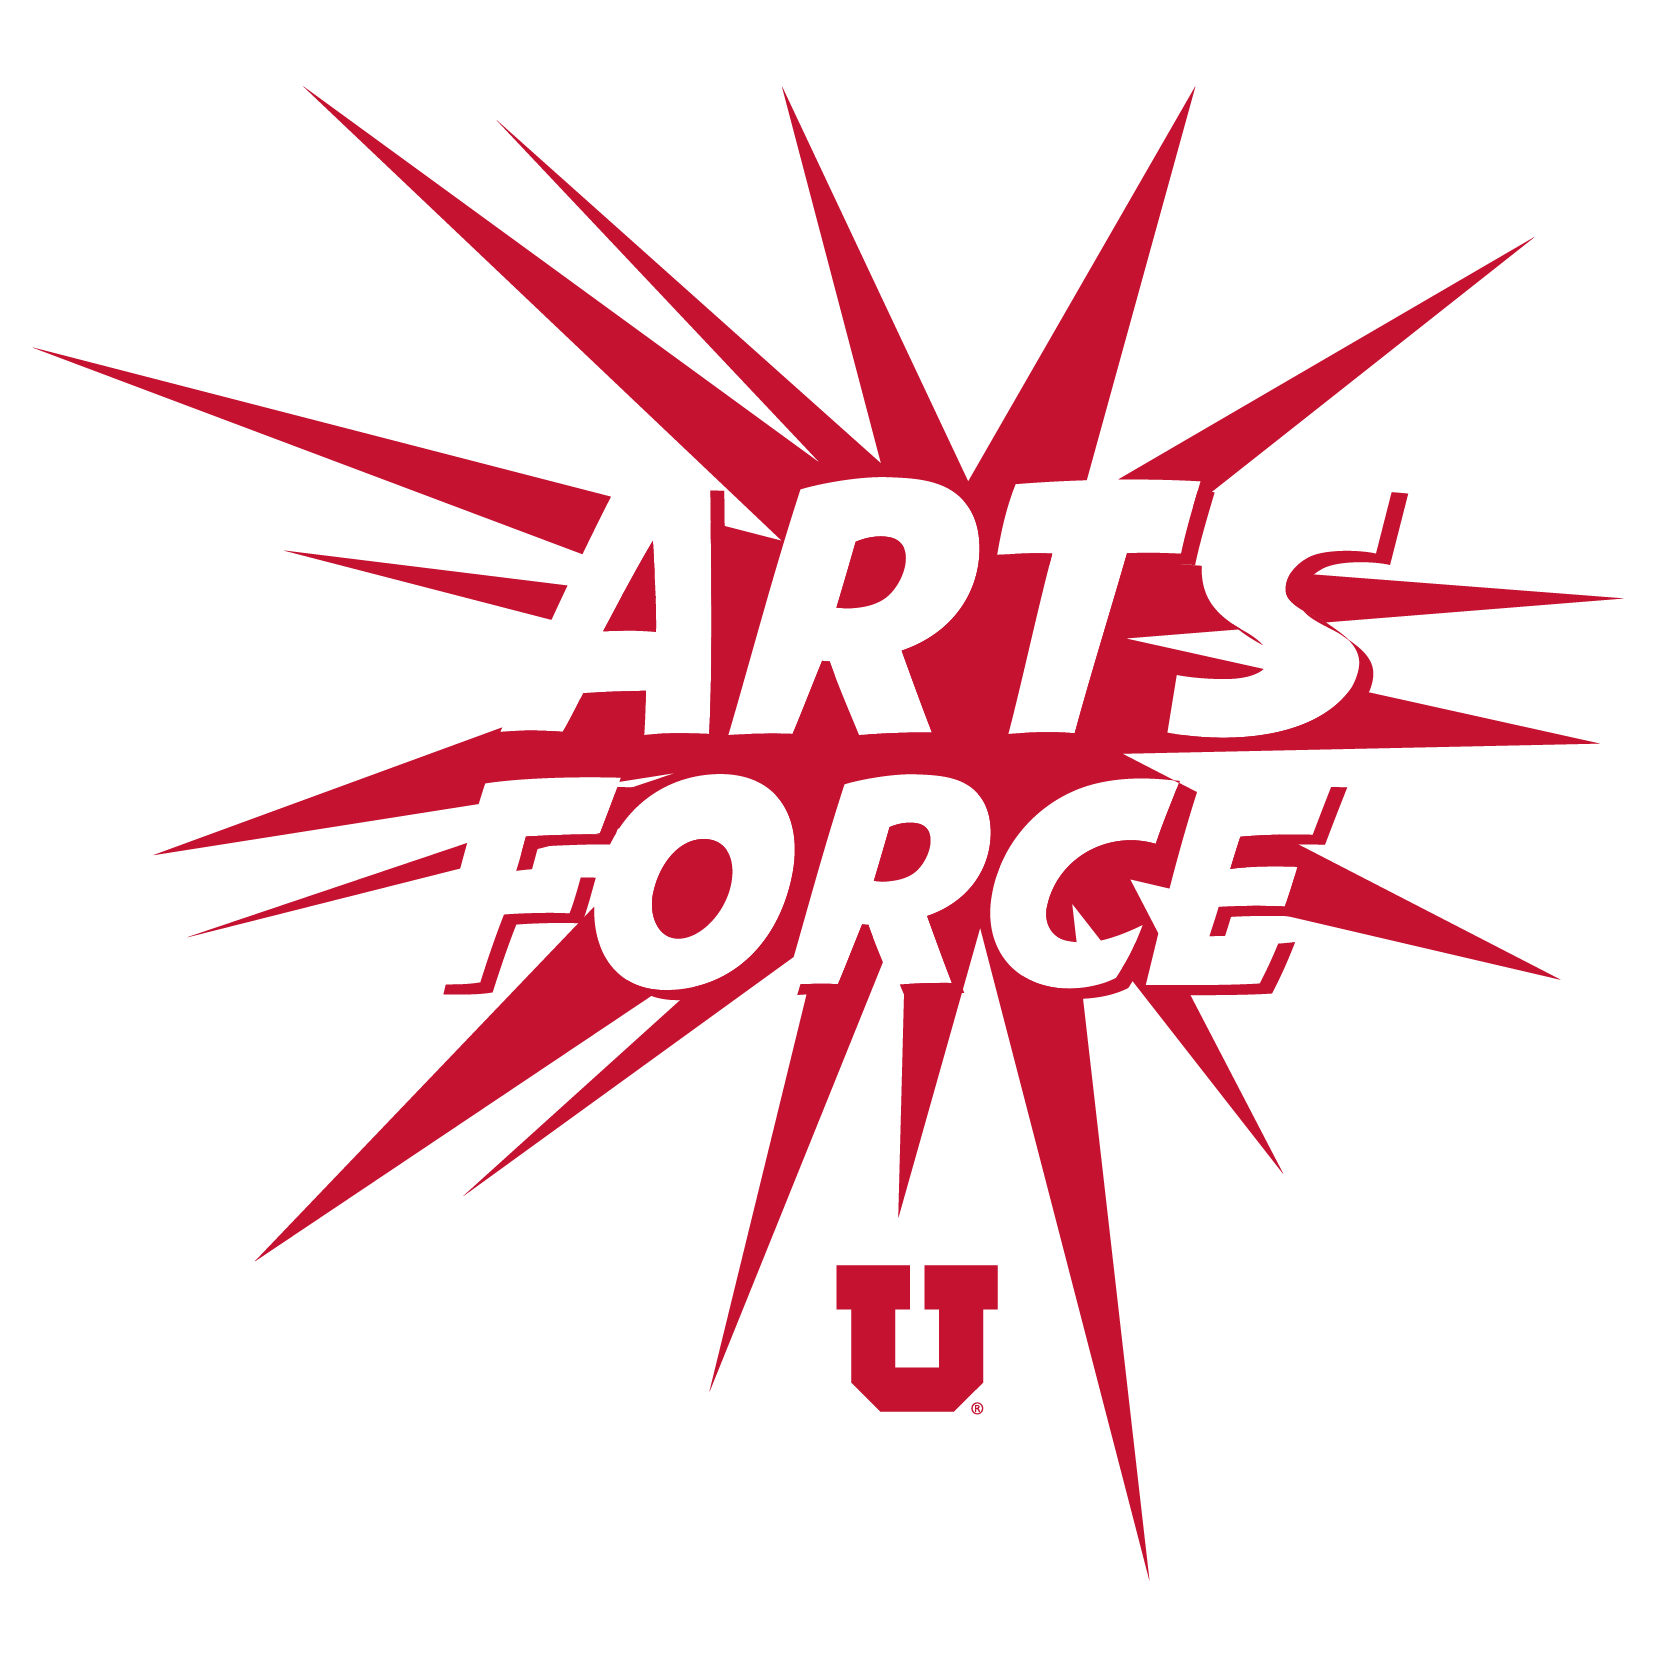 ArtsForce 2015 Red